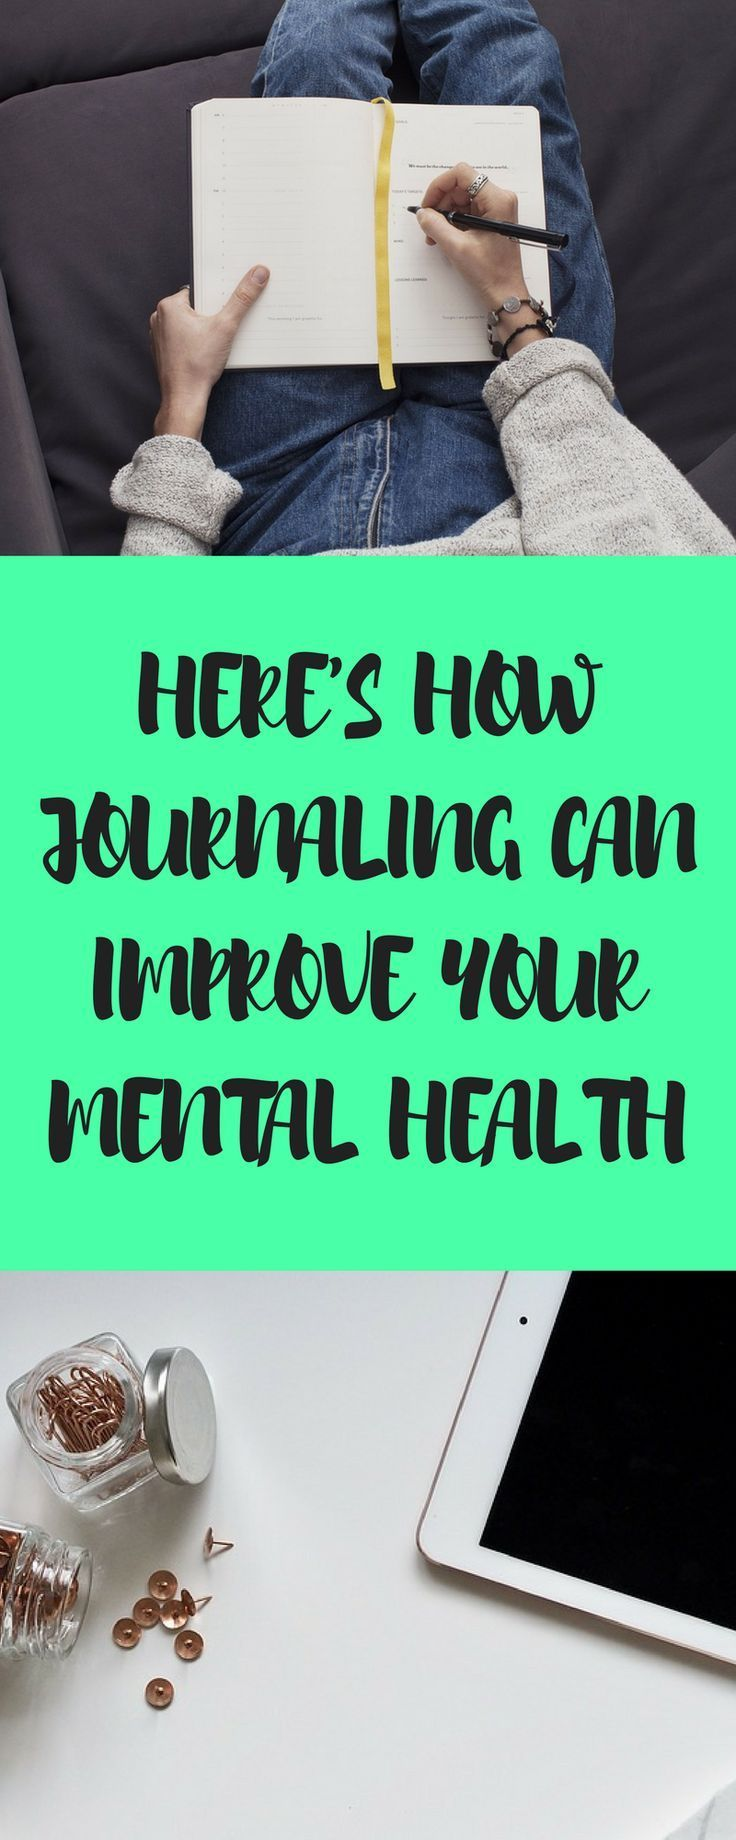 Here's how journaling can improve your mental health.